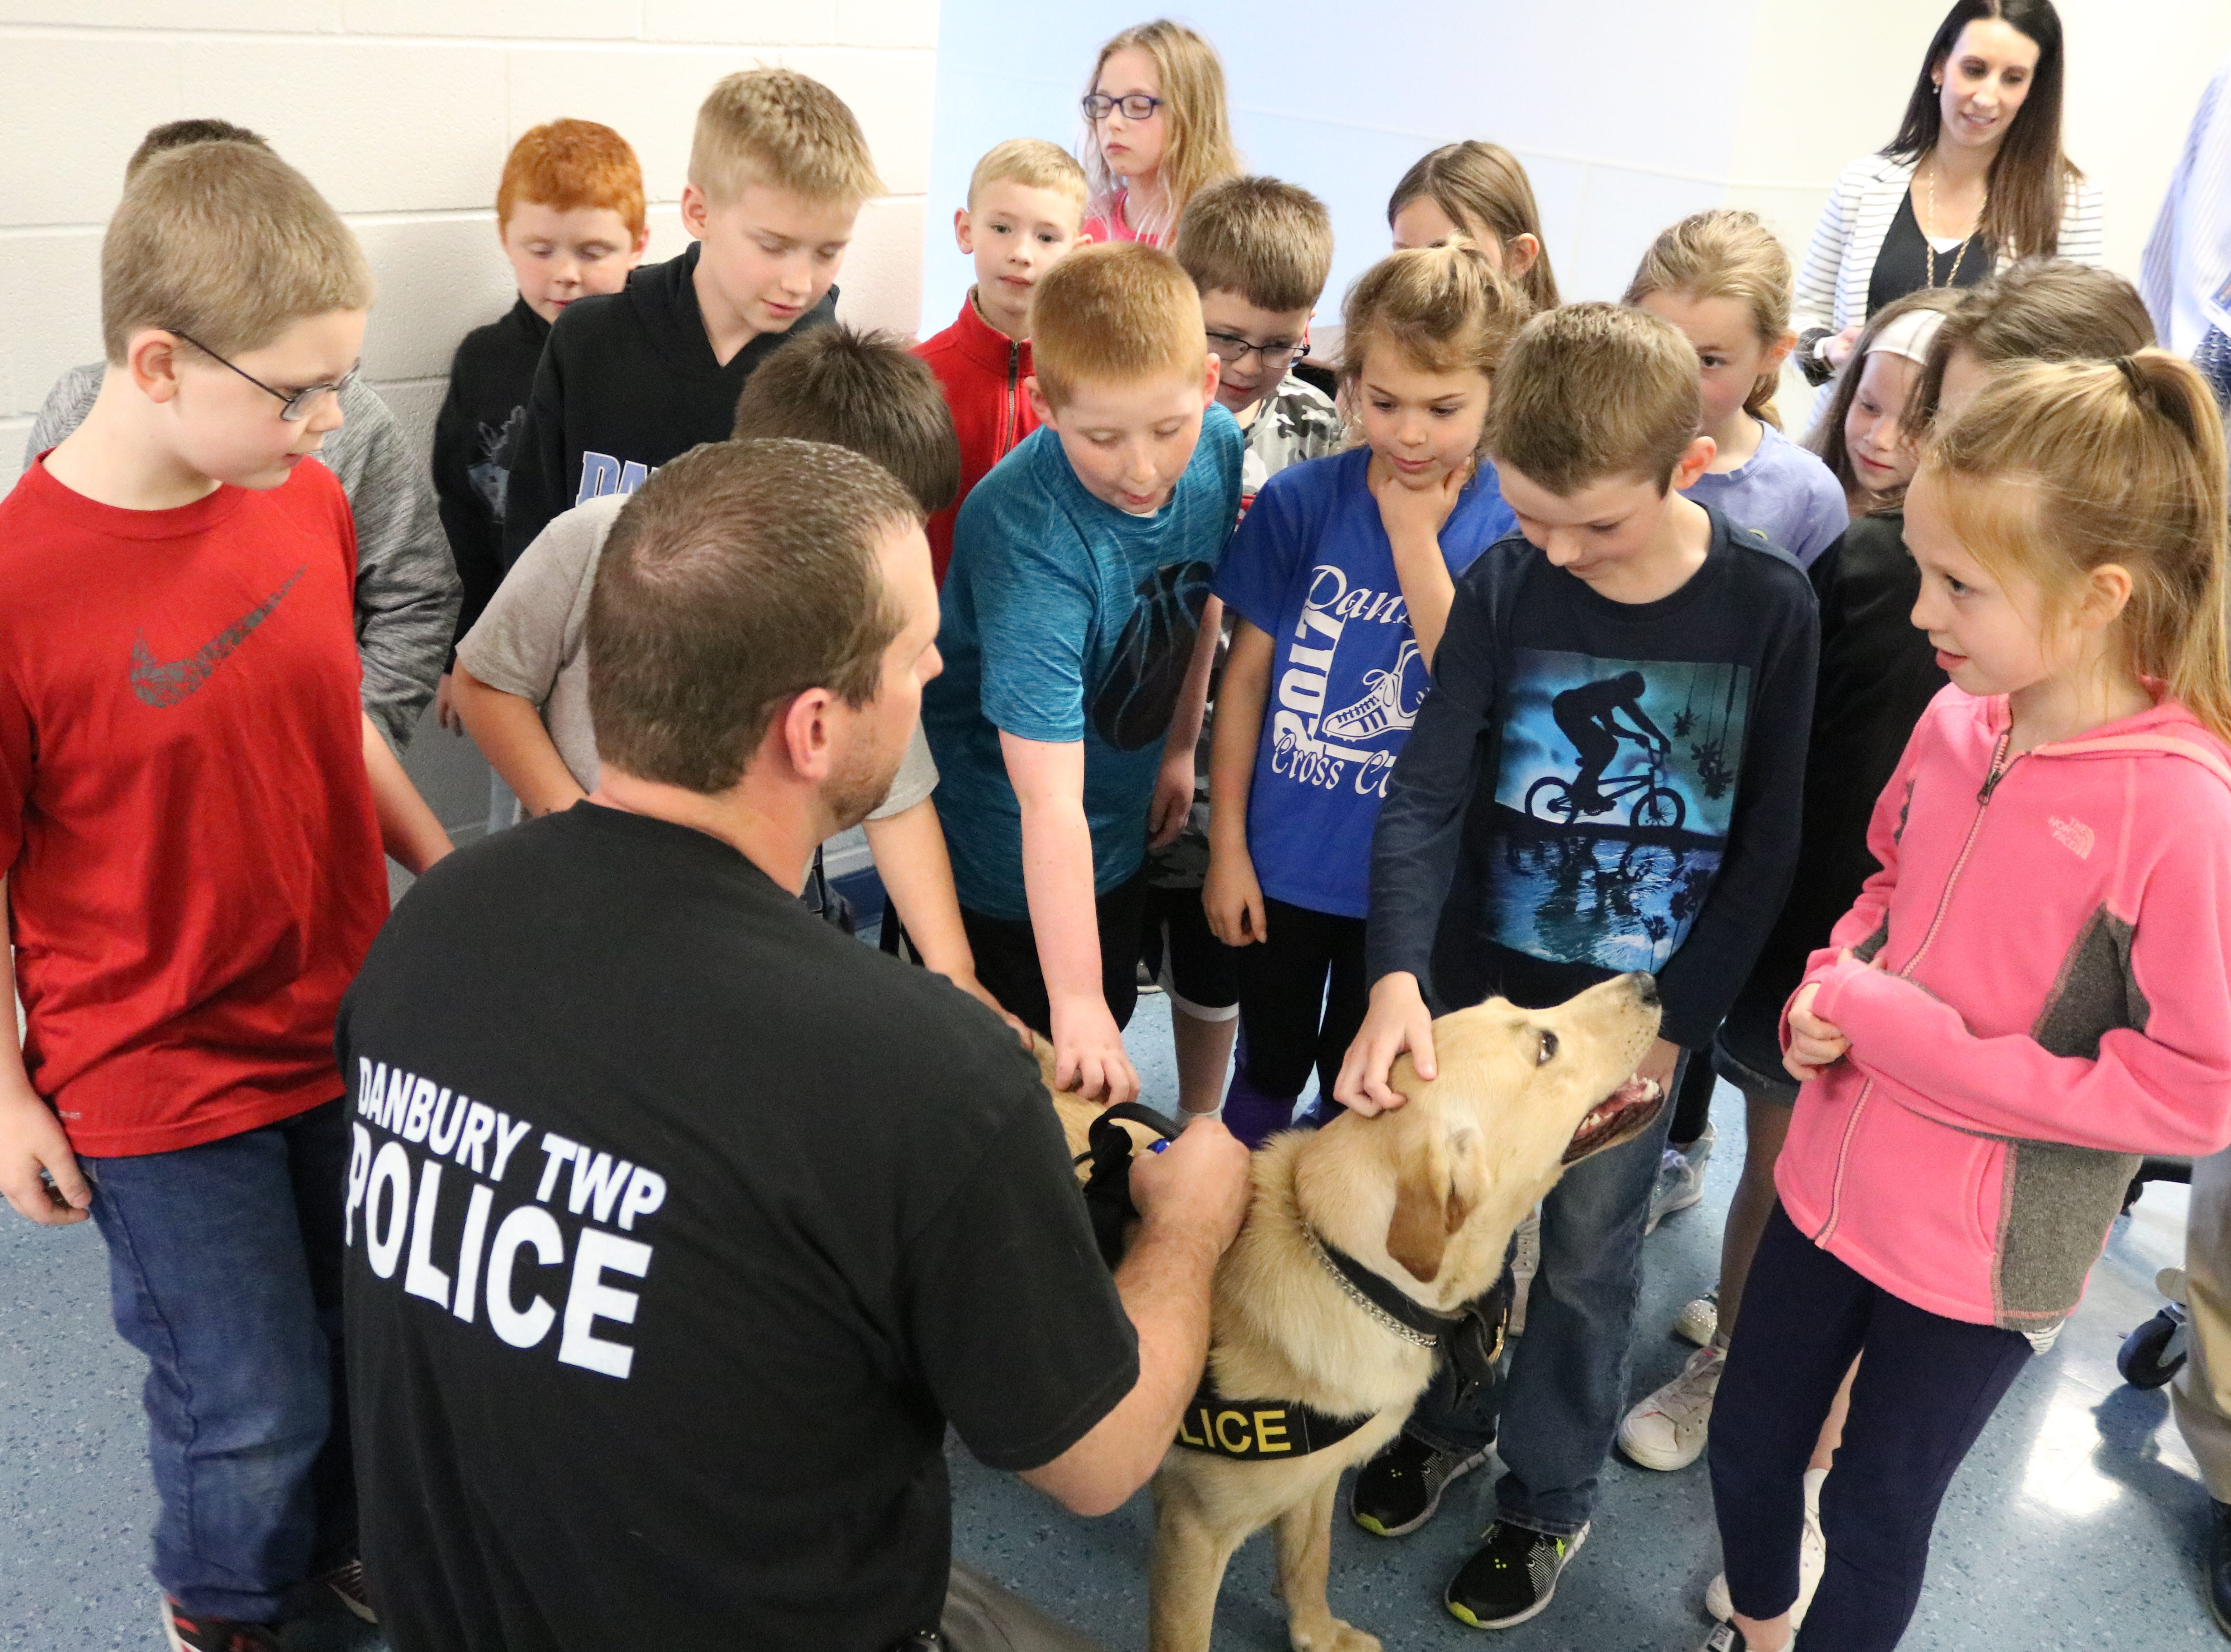 K-9 Kalahan, the newest officer at the Danbury Township Police Department, met local students at Danbury Local Schools on Tuesday.